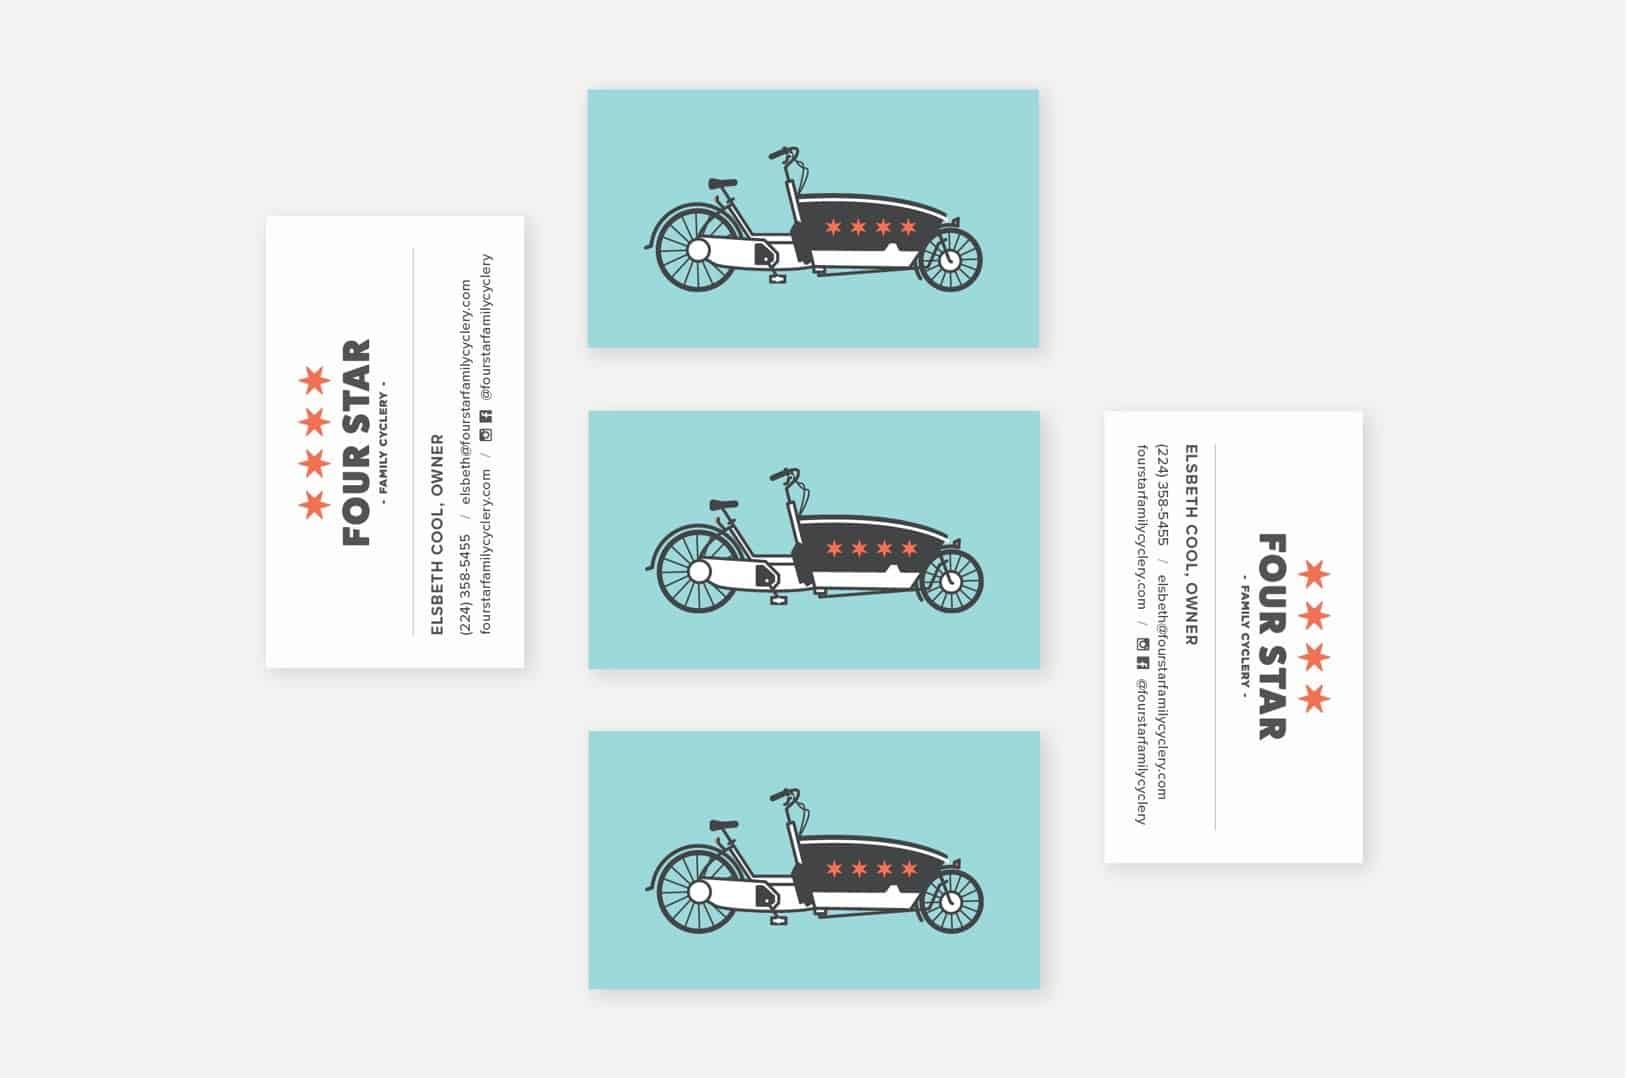 Business card design for Chicago bike shop